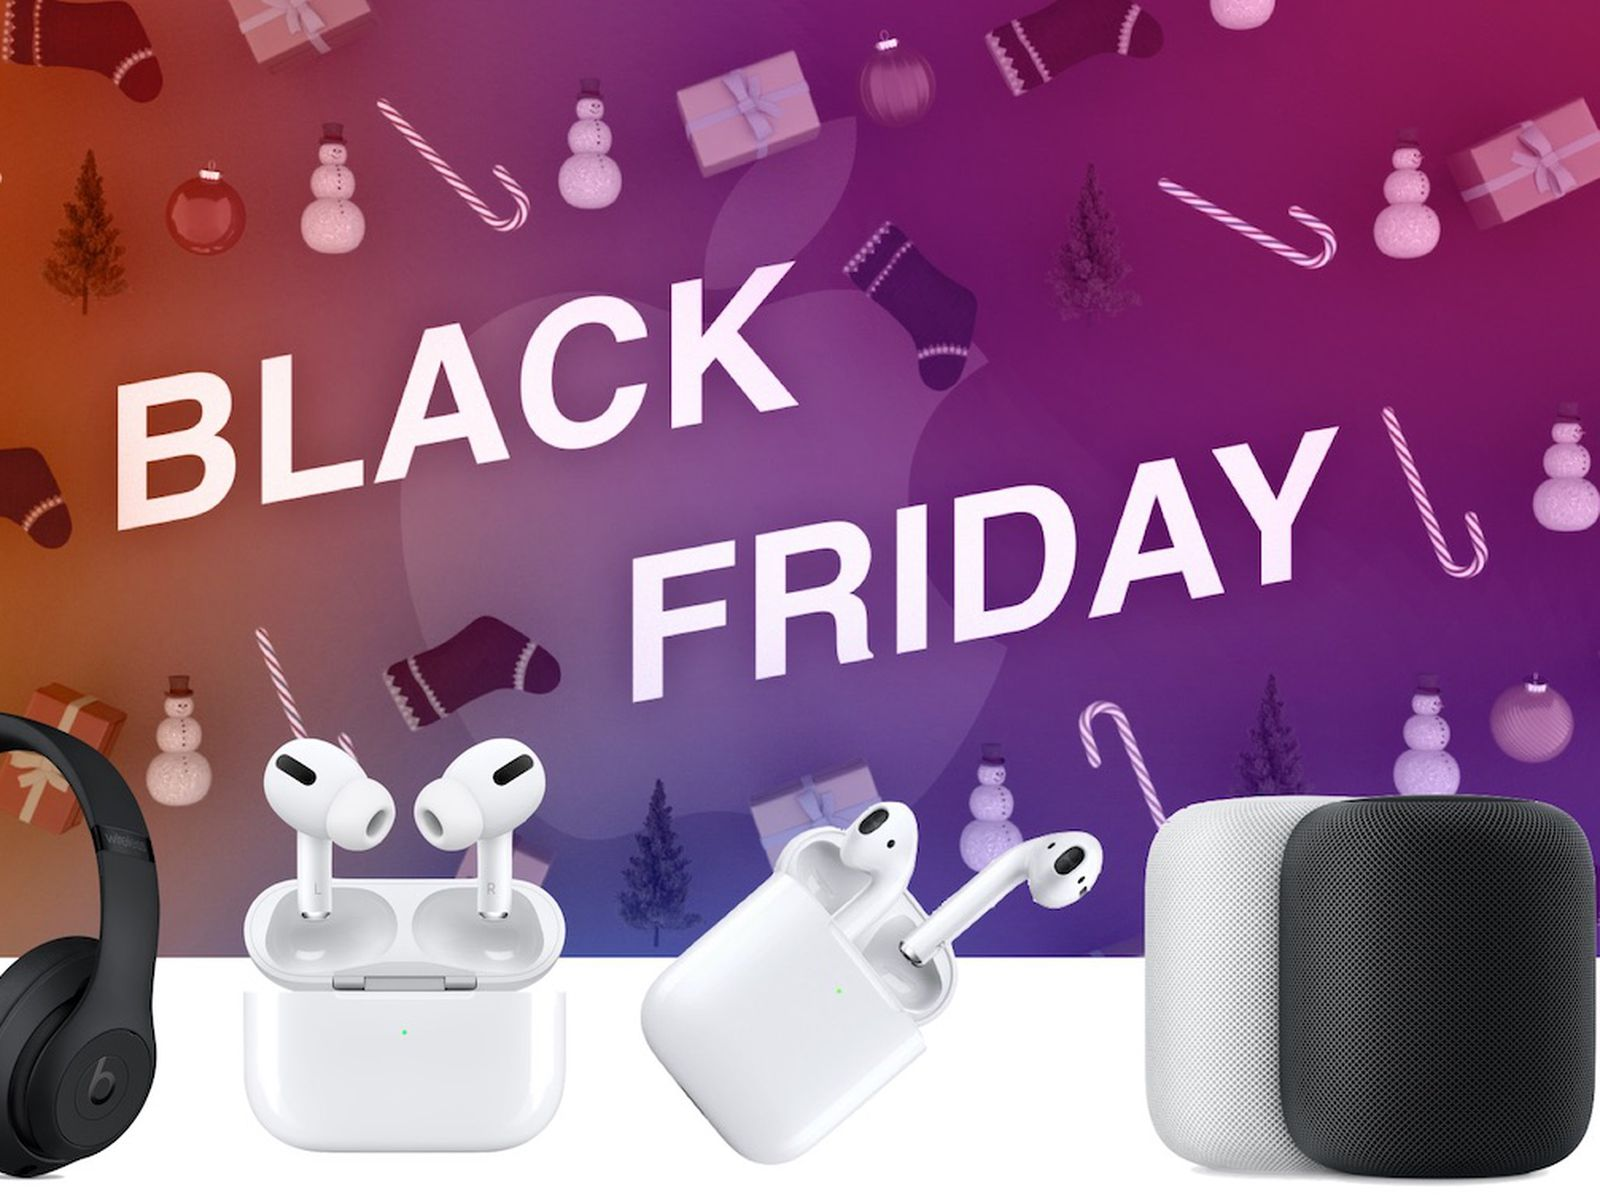 Black Friday 2019 Best Deals On Airpods Homepod Beats And Other Audio Devices Macrumors